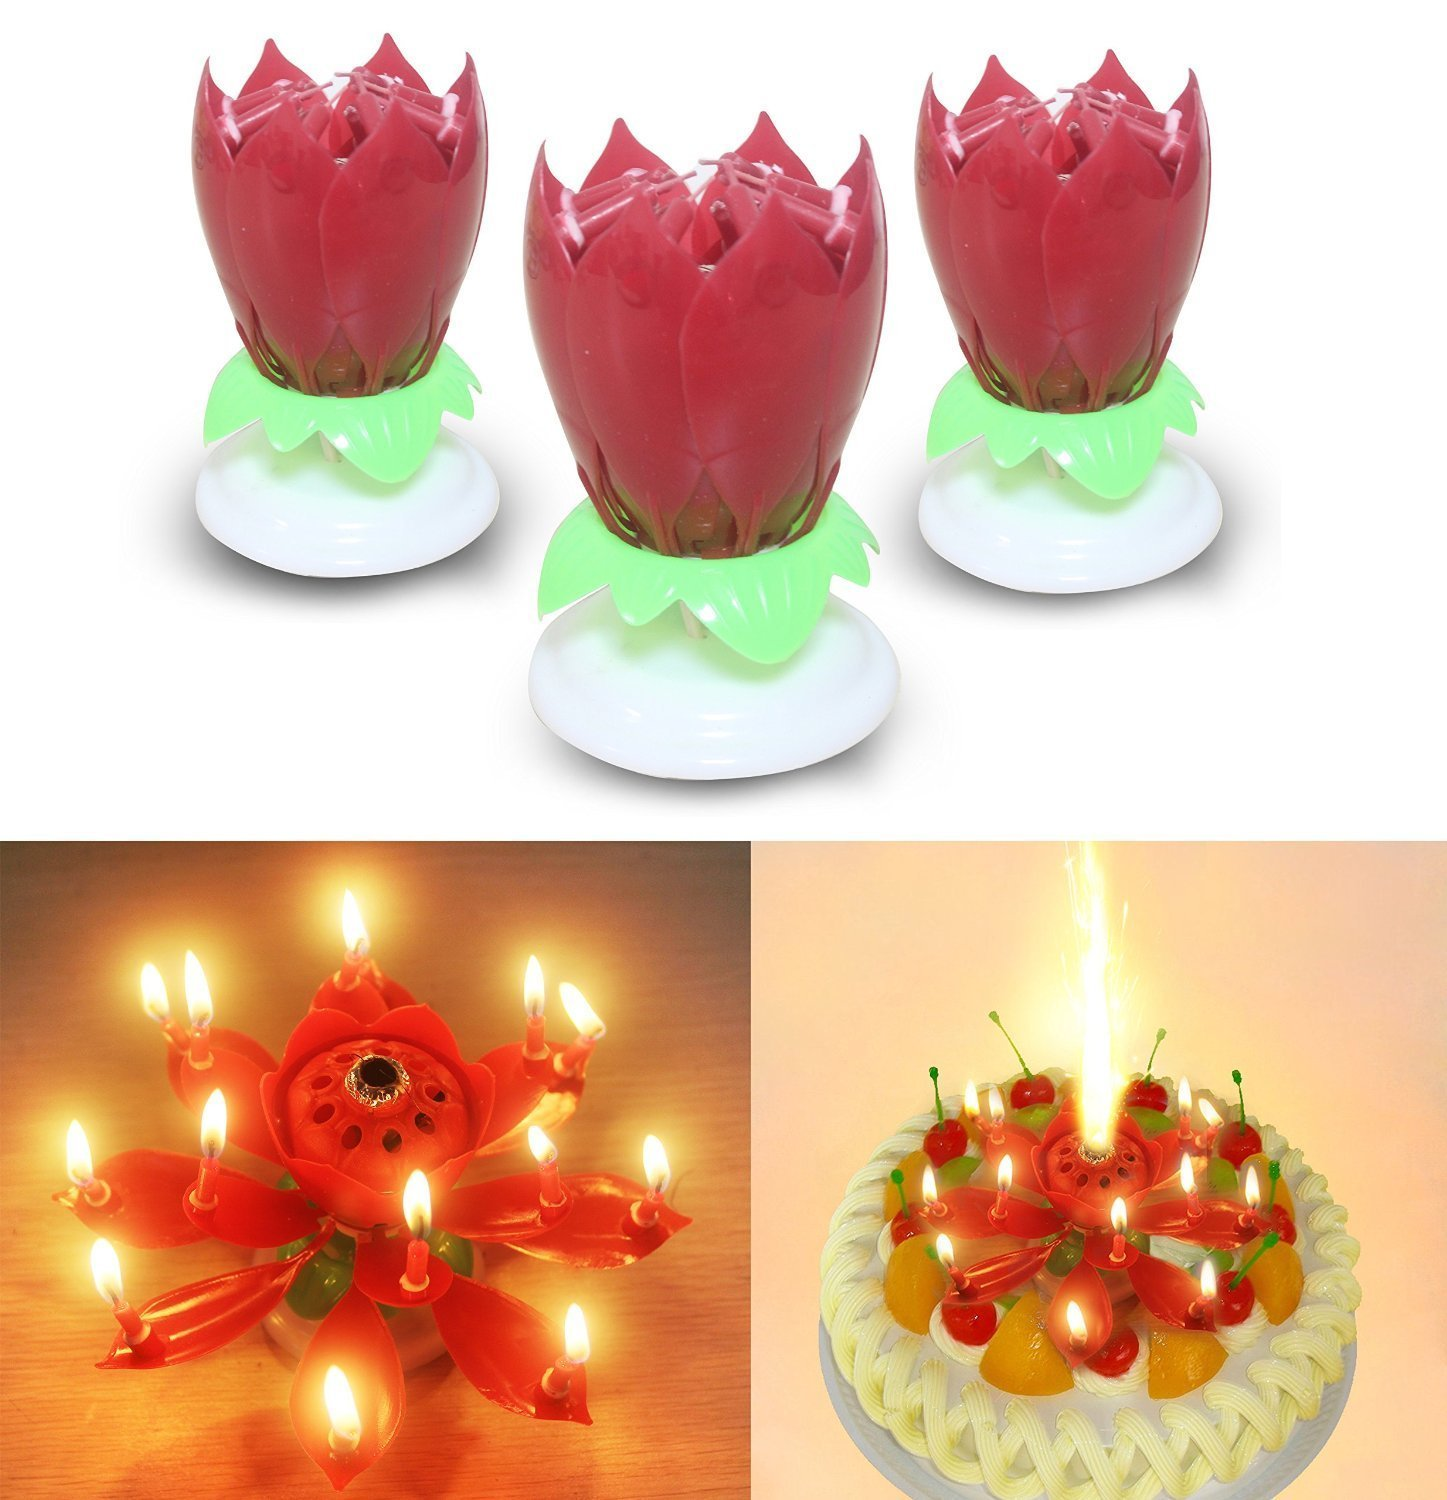 3PCS Set Romantic Music Birthday Candle Two Layers With 14 Small Candles Musical Lotus Rotating Happy Flower Red Amazonca Home